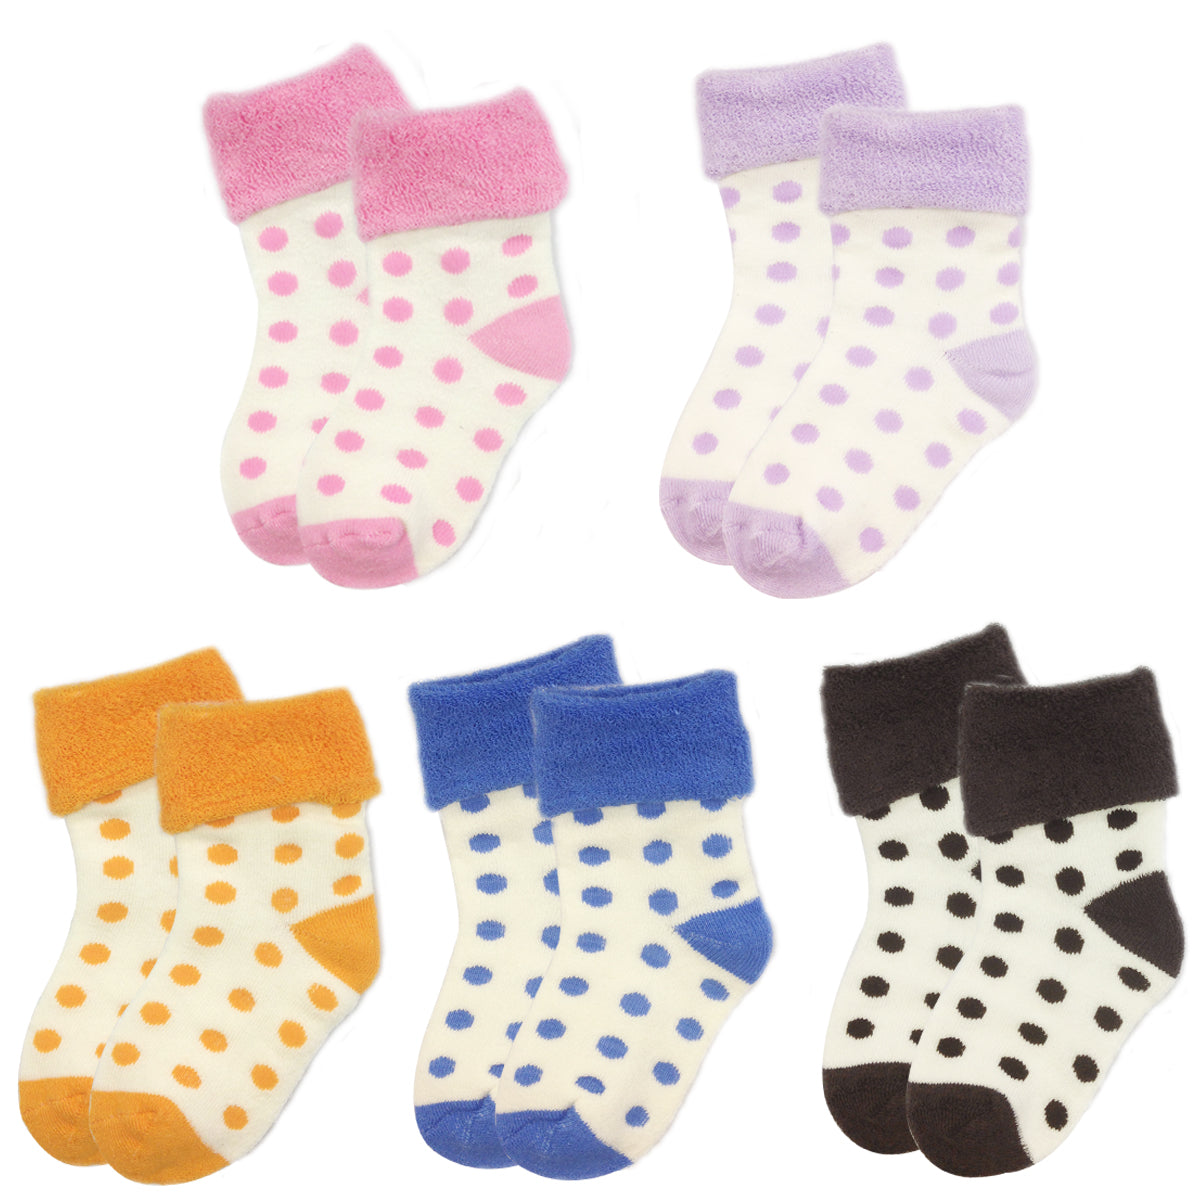 Wrapables Polka Dot Baby Socks, Set of 5 [ A63737, A63738, A63740, A63741, A63742]